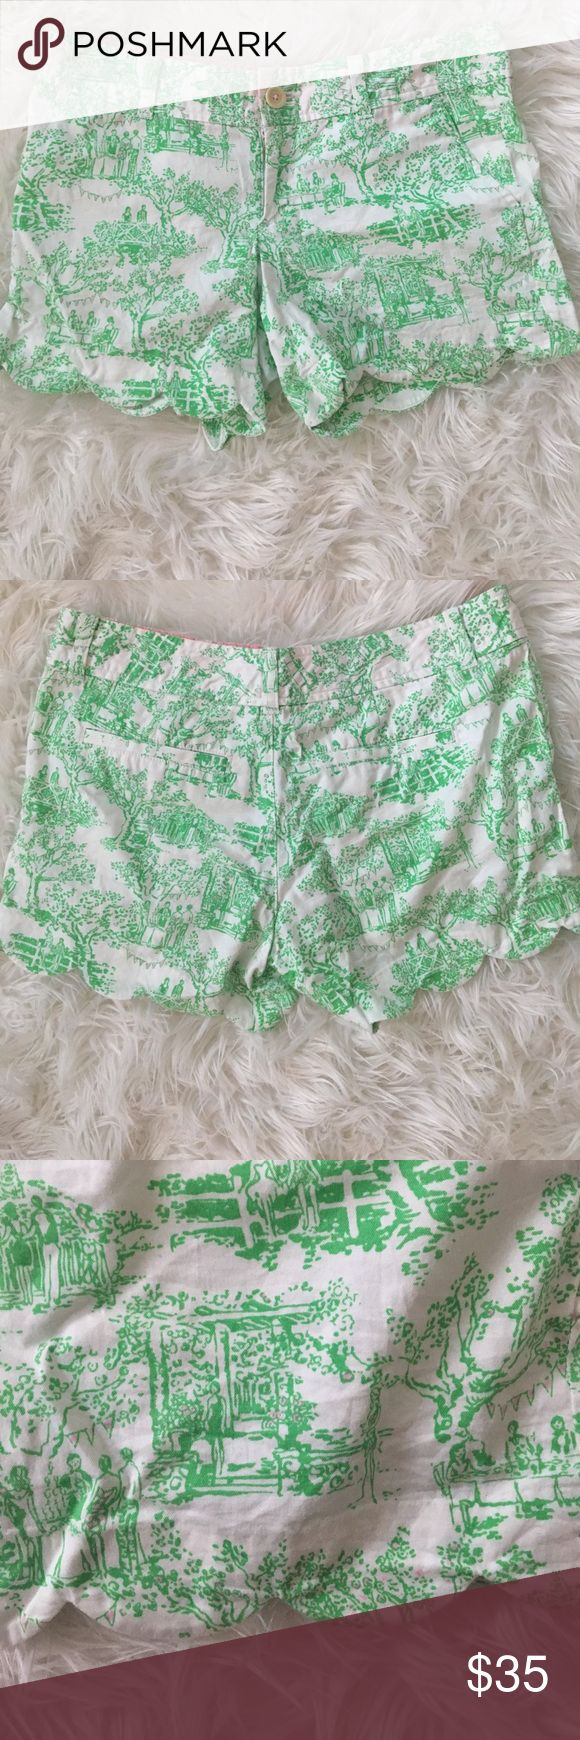 """Lilly Pulitzer Buttercup Scallop Shorts! Adorable Lilly Pulitzer 5"""" buttercup scallop hem shorts! Size 4, 100% cotton, worn once! Lilly Pulitzer Shorts"""